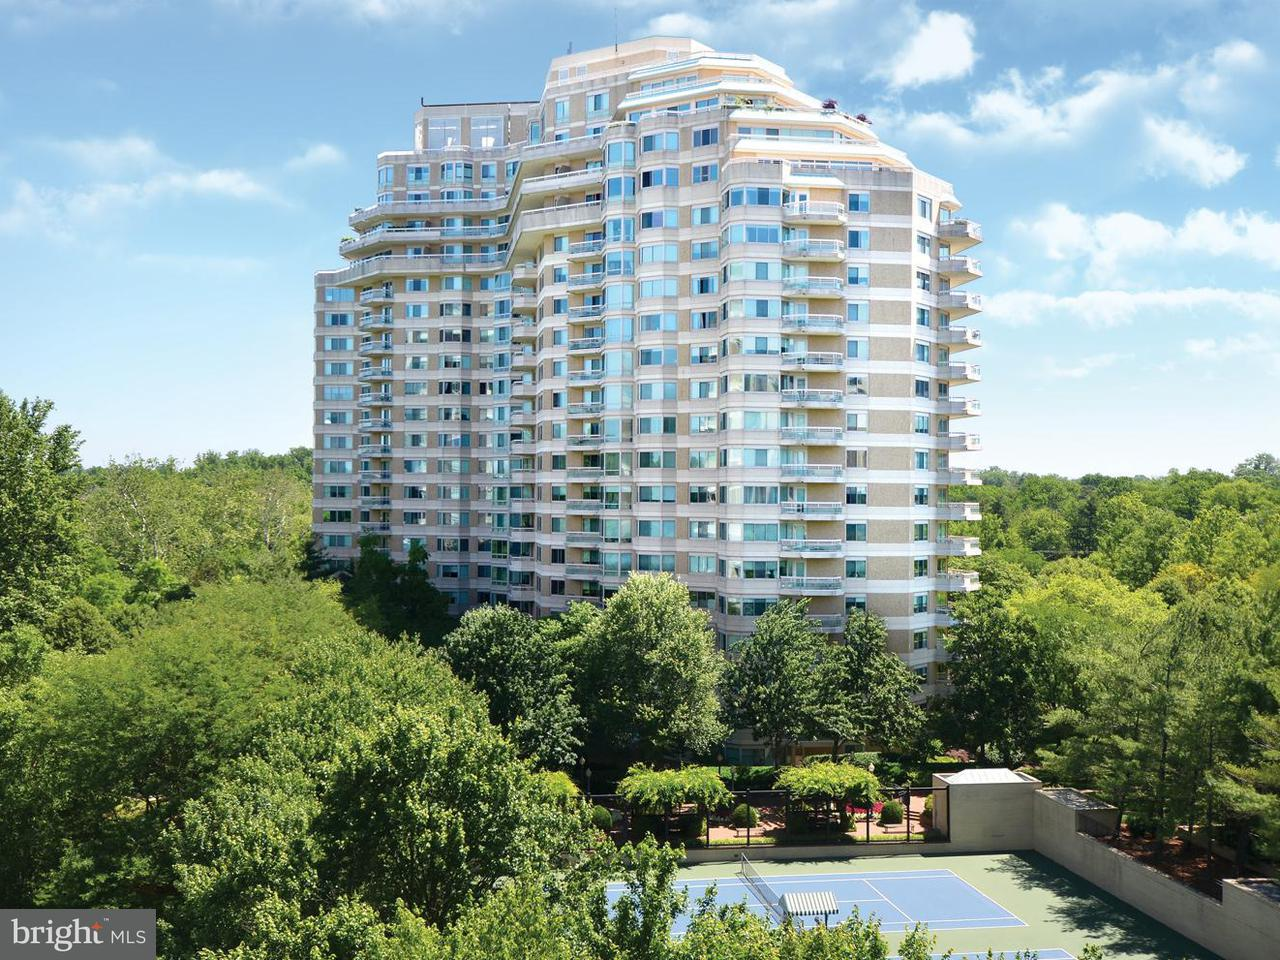 Condominium for Sale at 5600 WISCONSIN AVE #906 5600 WISCONSIN AVE #906 Chevy Chase, Maryland 20815 United States